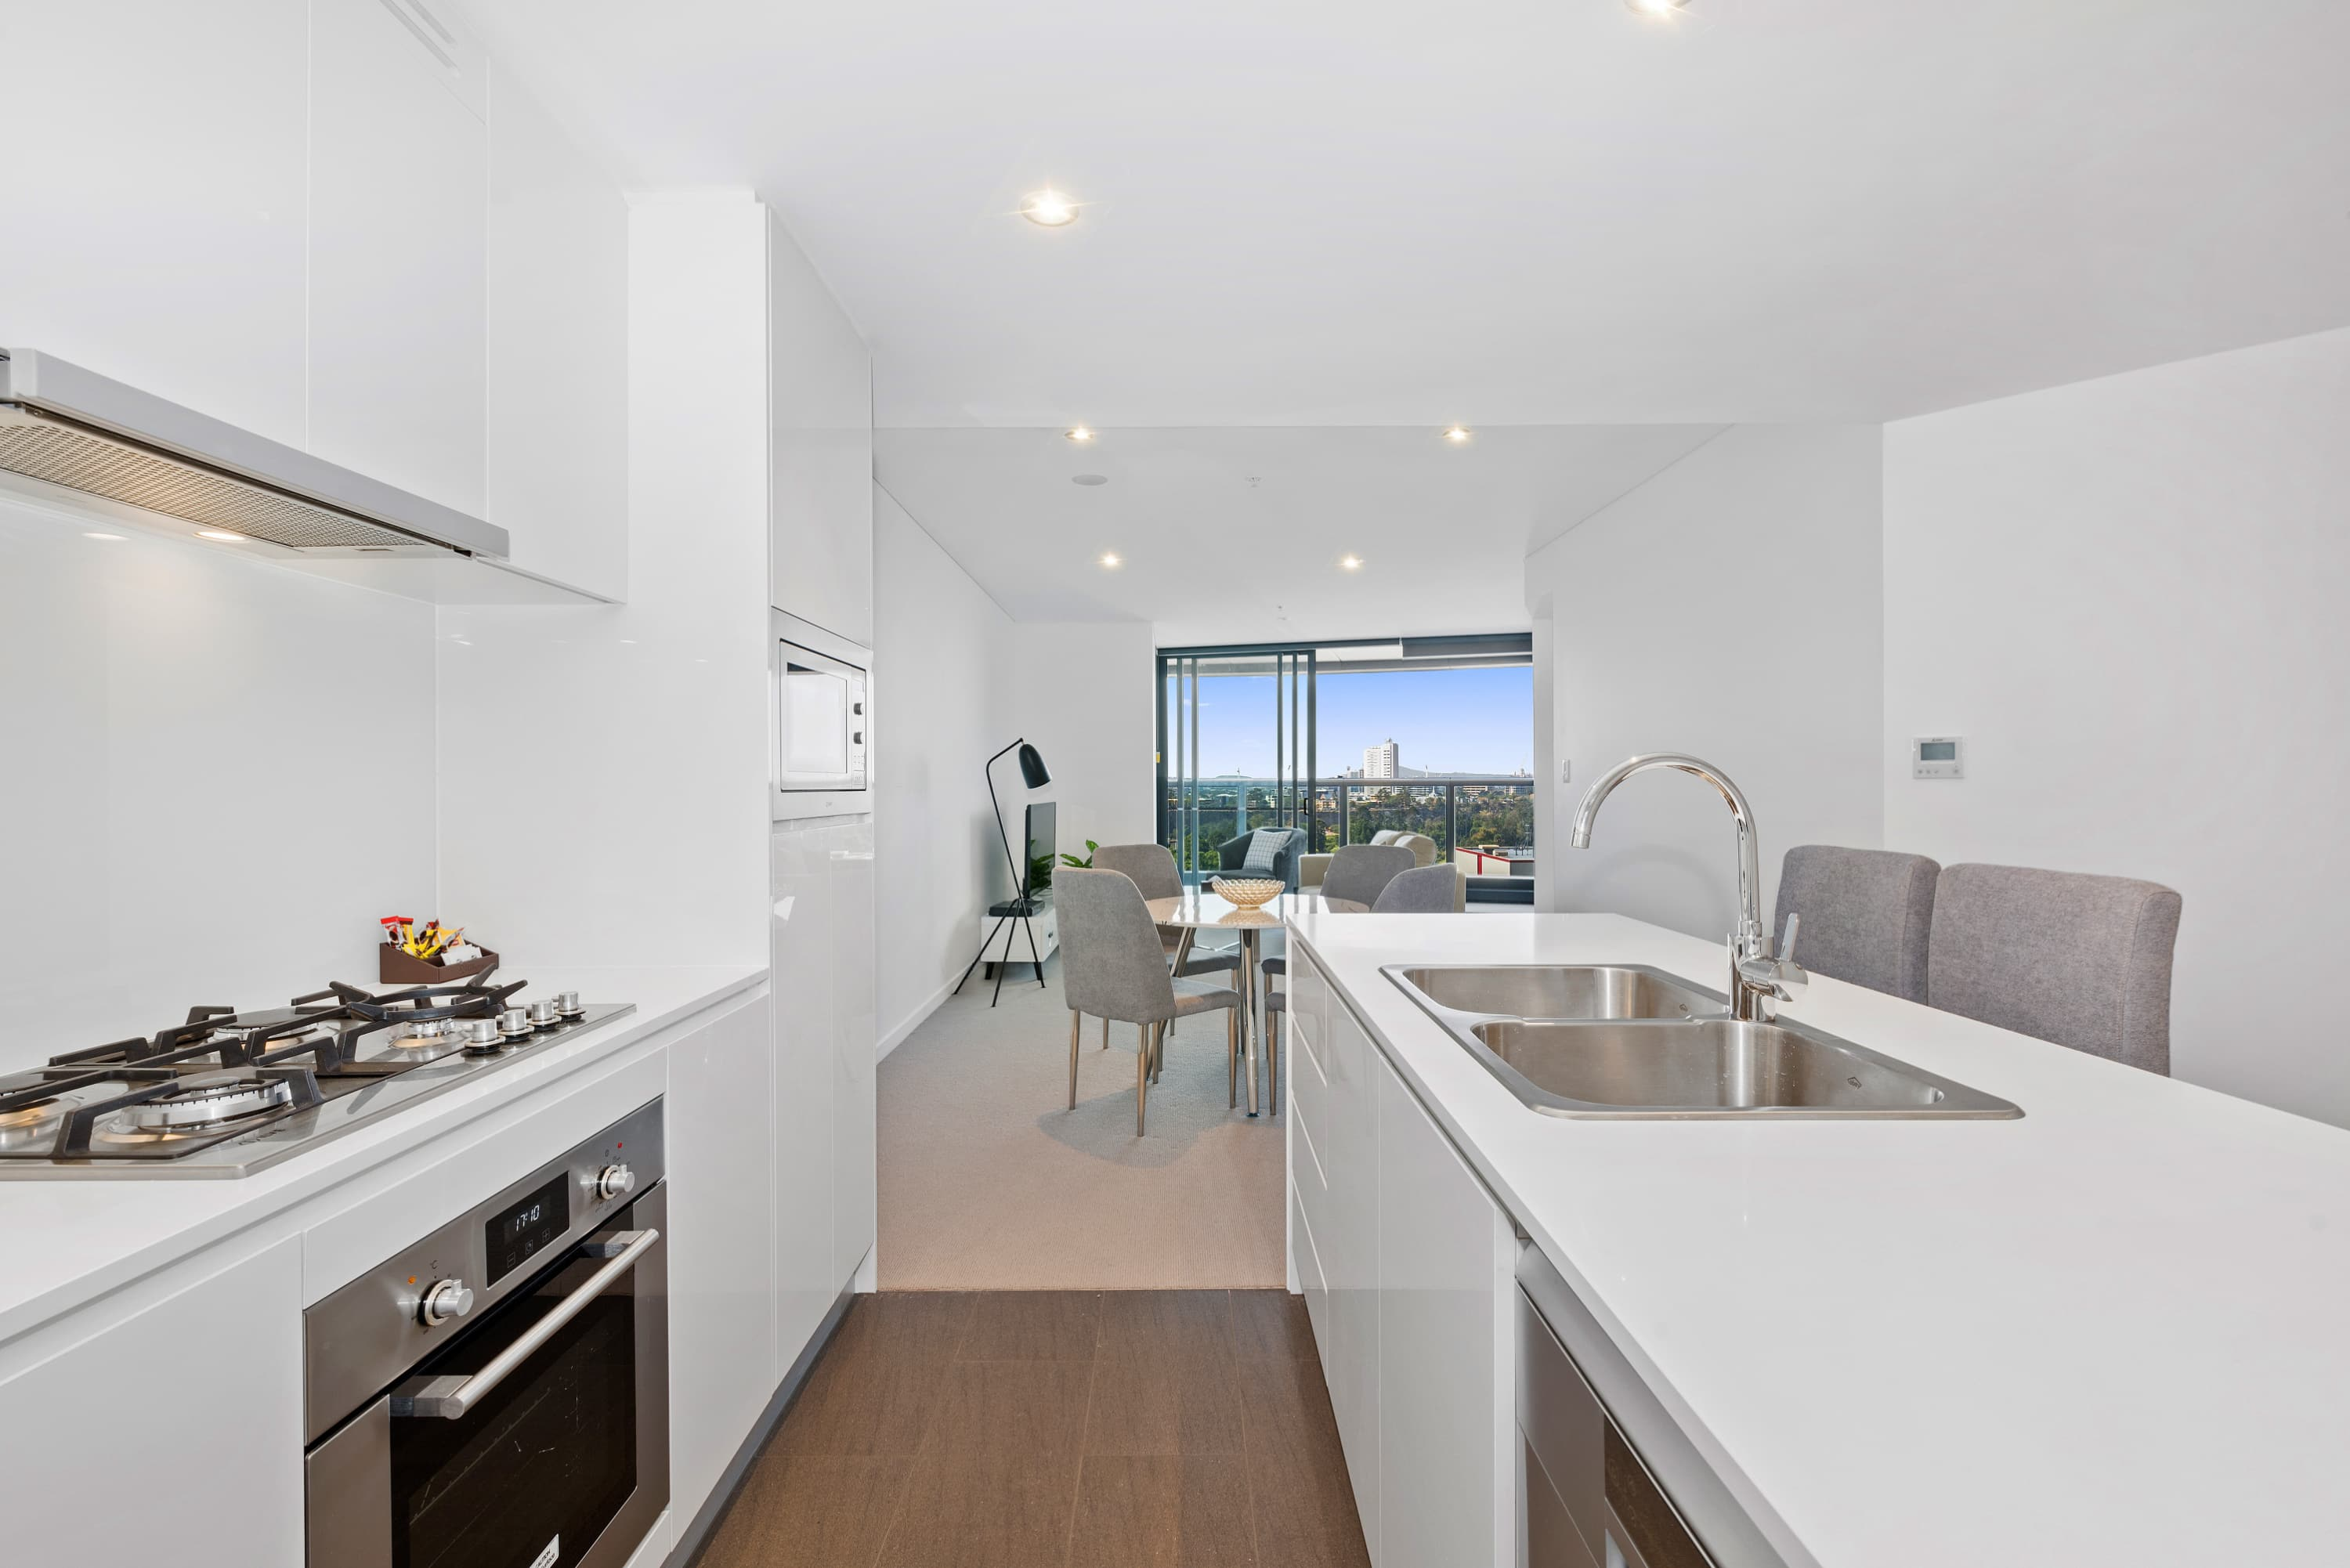 2 Bedroom Apartment Brisbane 2 Bedroom Apartments In Brisbane Brisbane Skytower